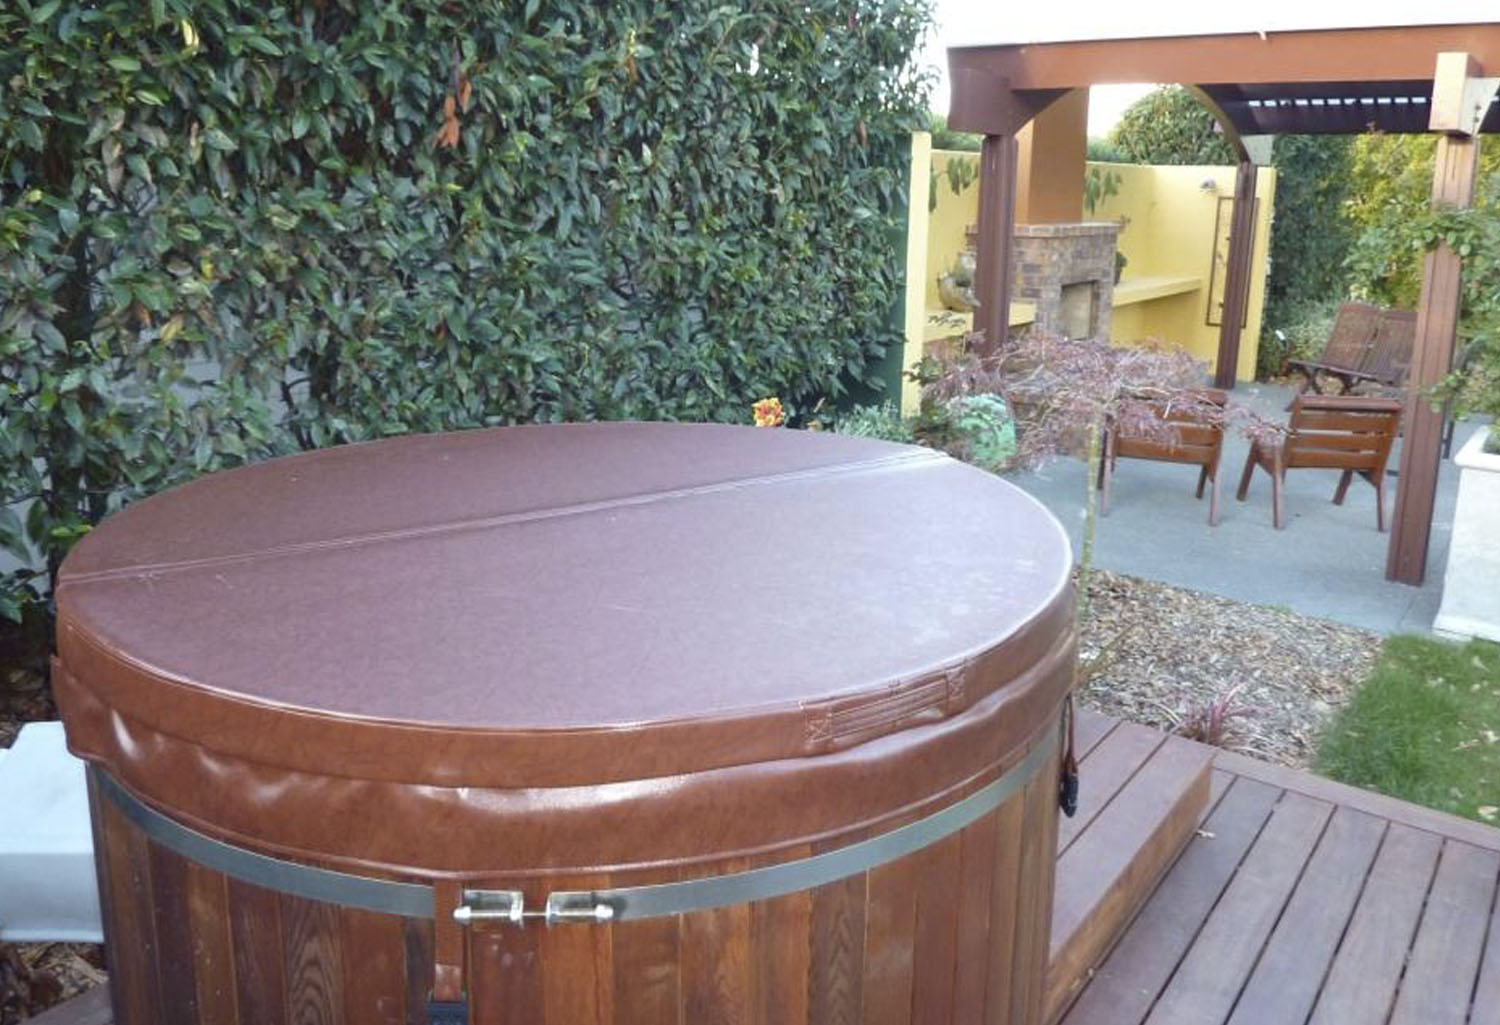 Jacuzzi madera piscina con jacuzzi y deck de madera for Jacuzzi exterior madera